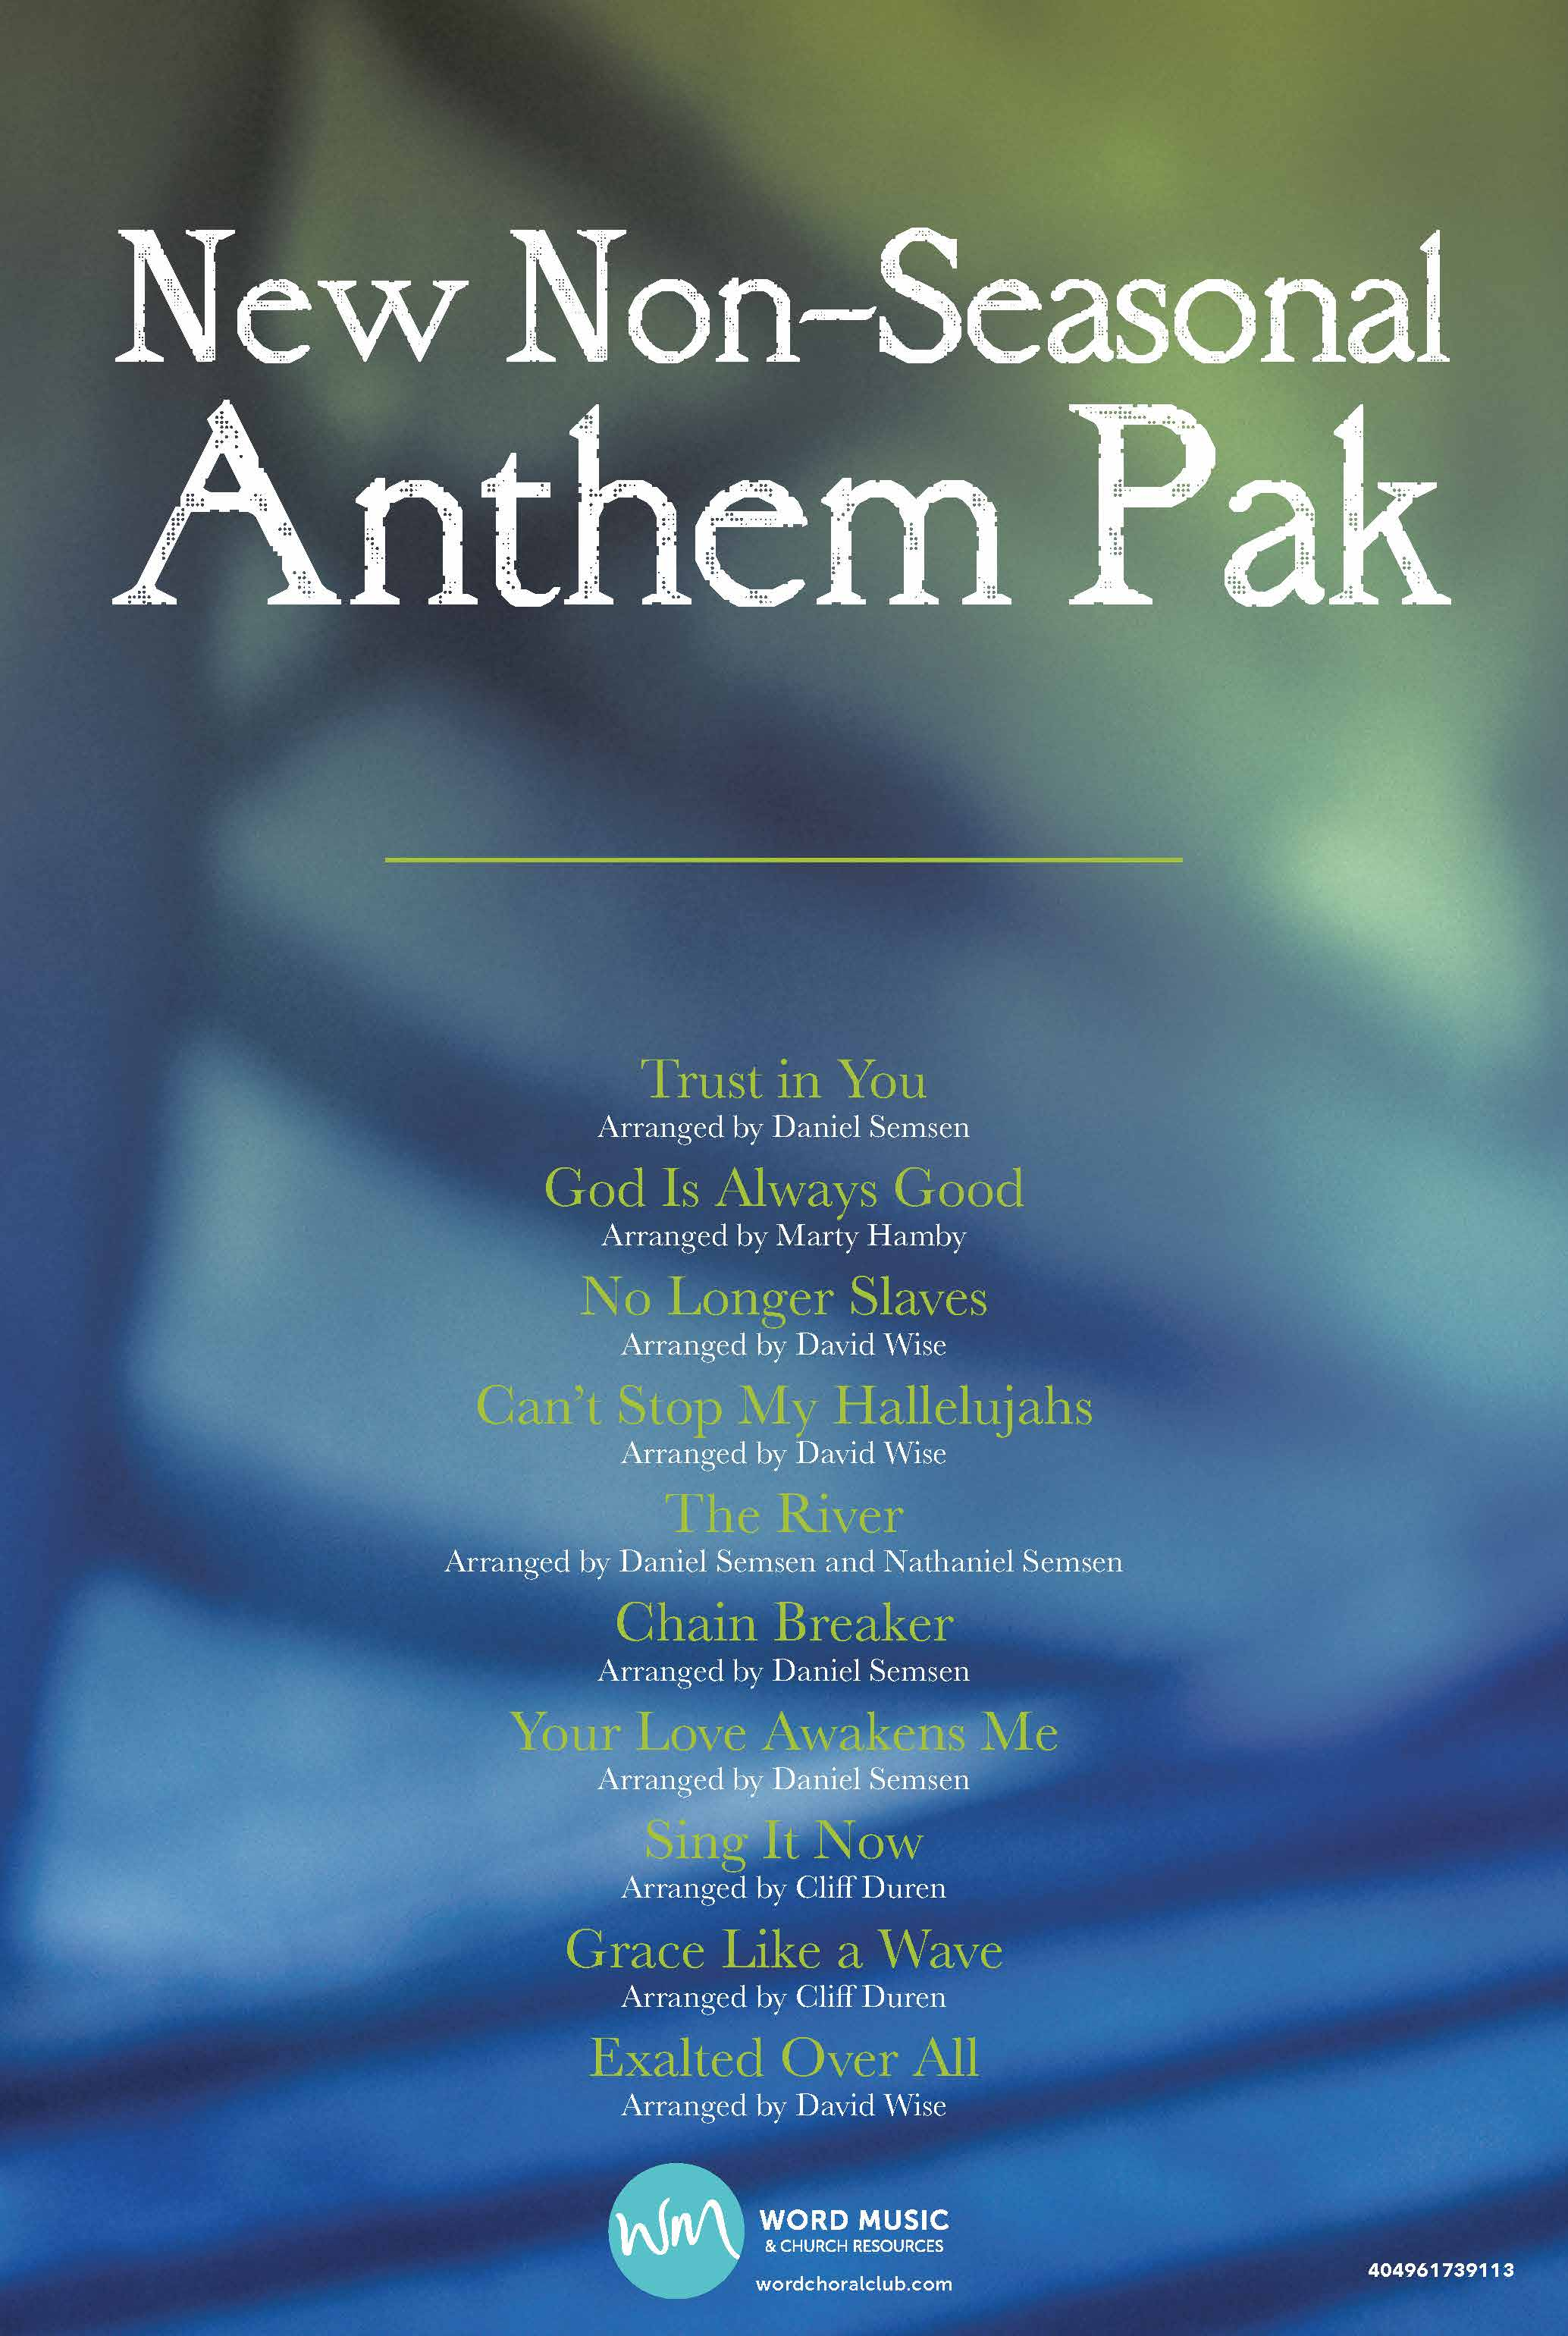 New Non-Seasonal Anthem Pak Vol 1